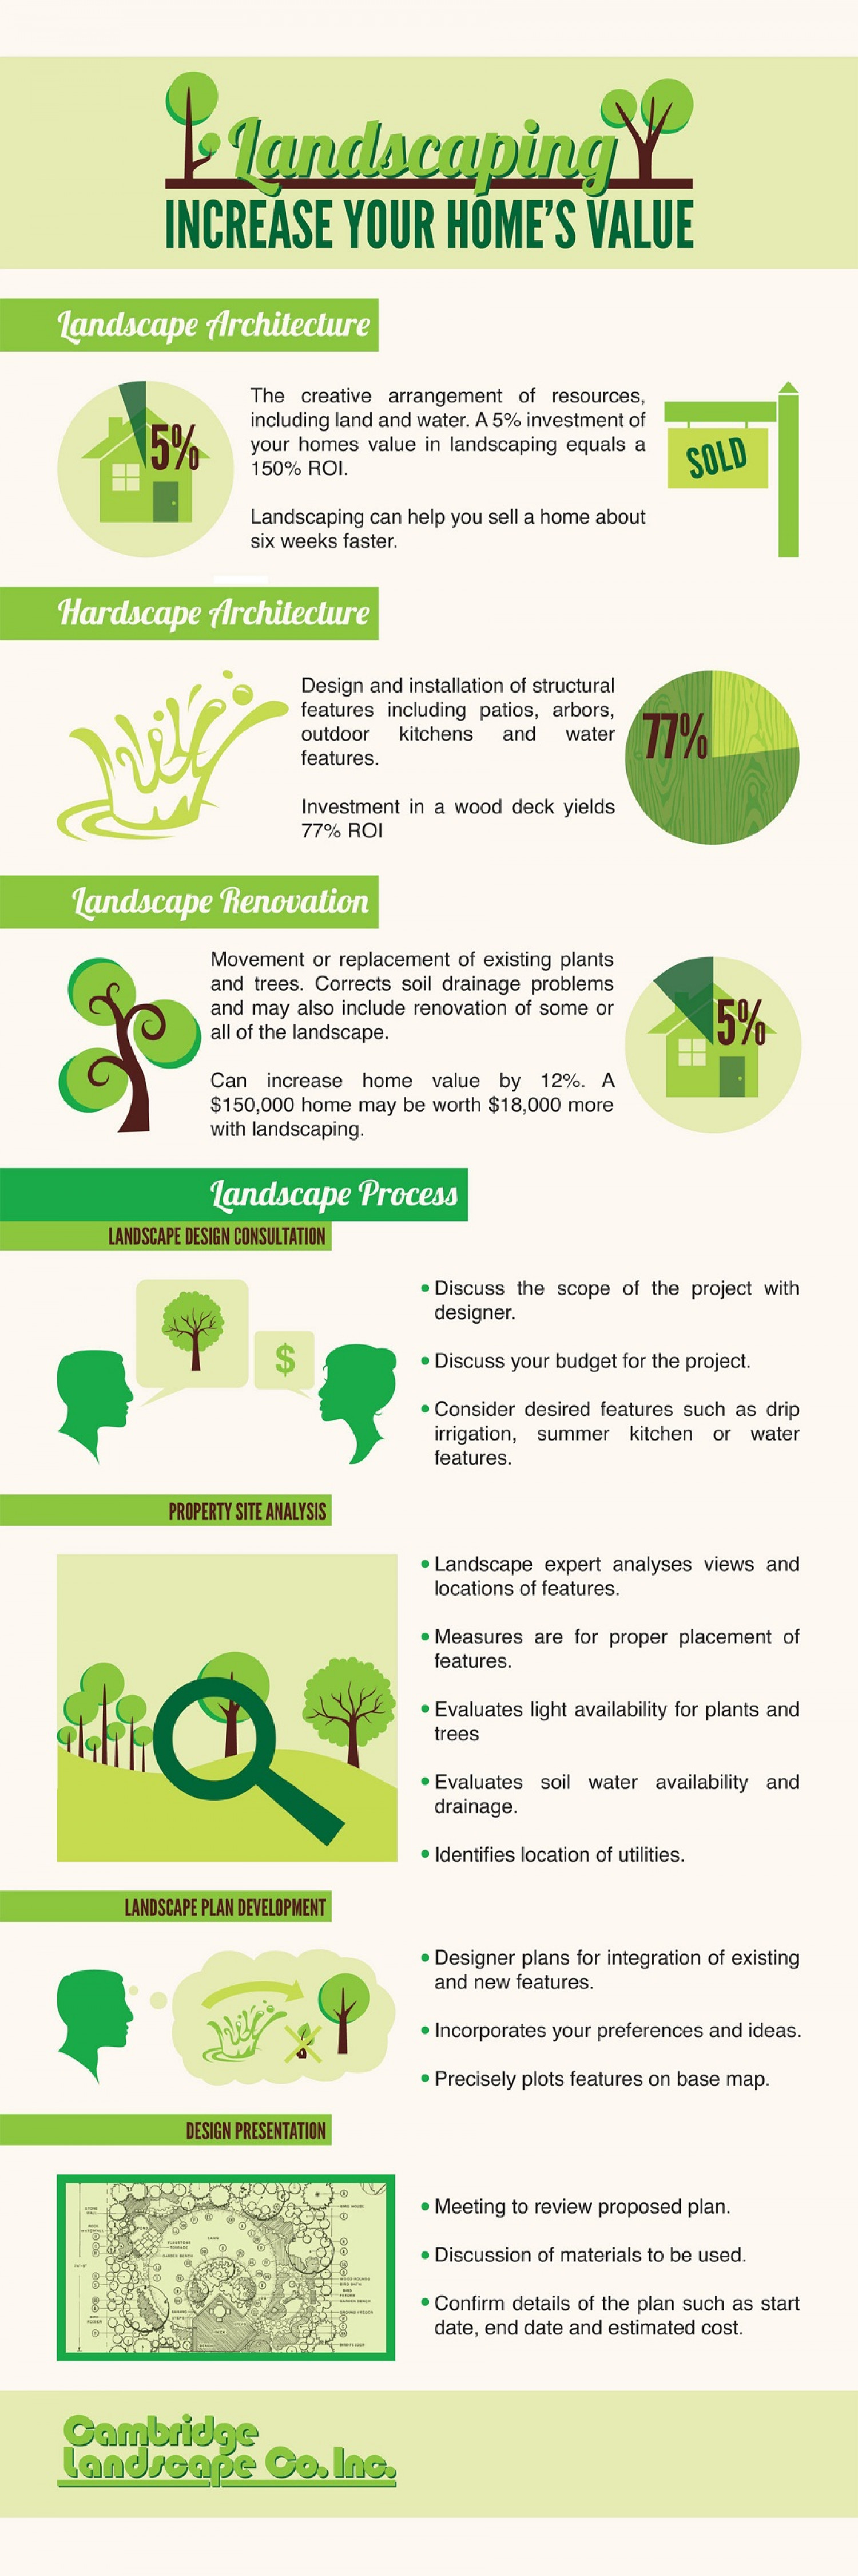 Tips On Hiring A Professional Landscape Designer | Visual.ly